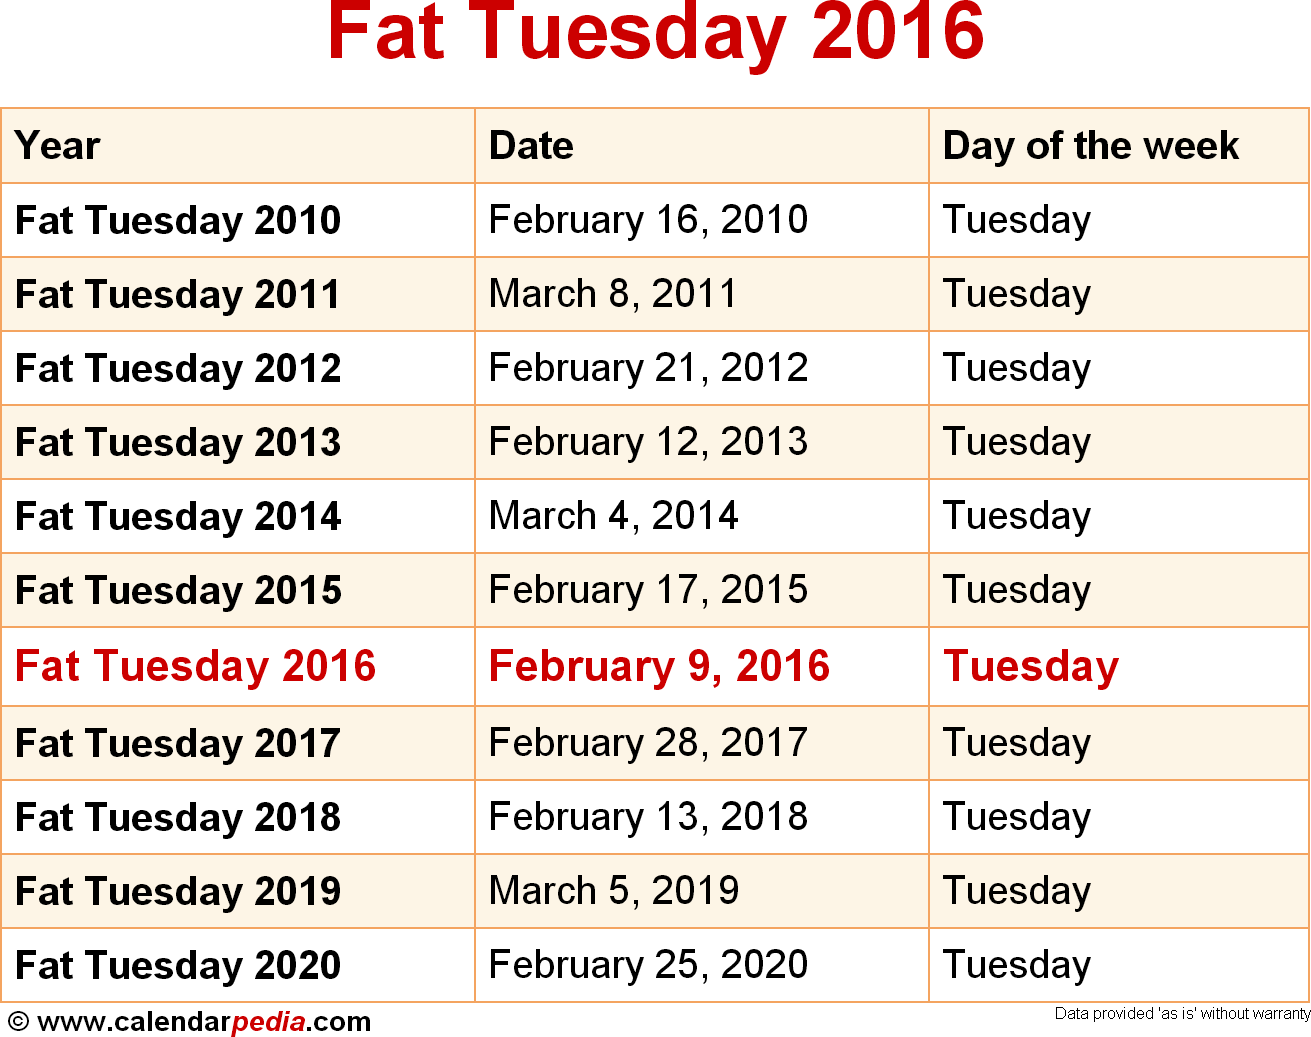 Fat Tuesday 2016